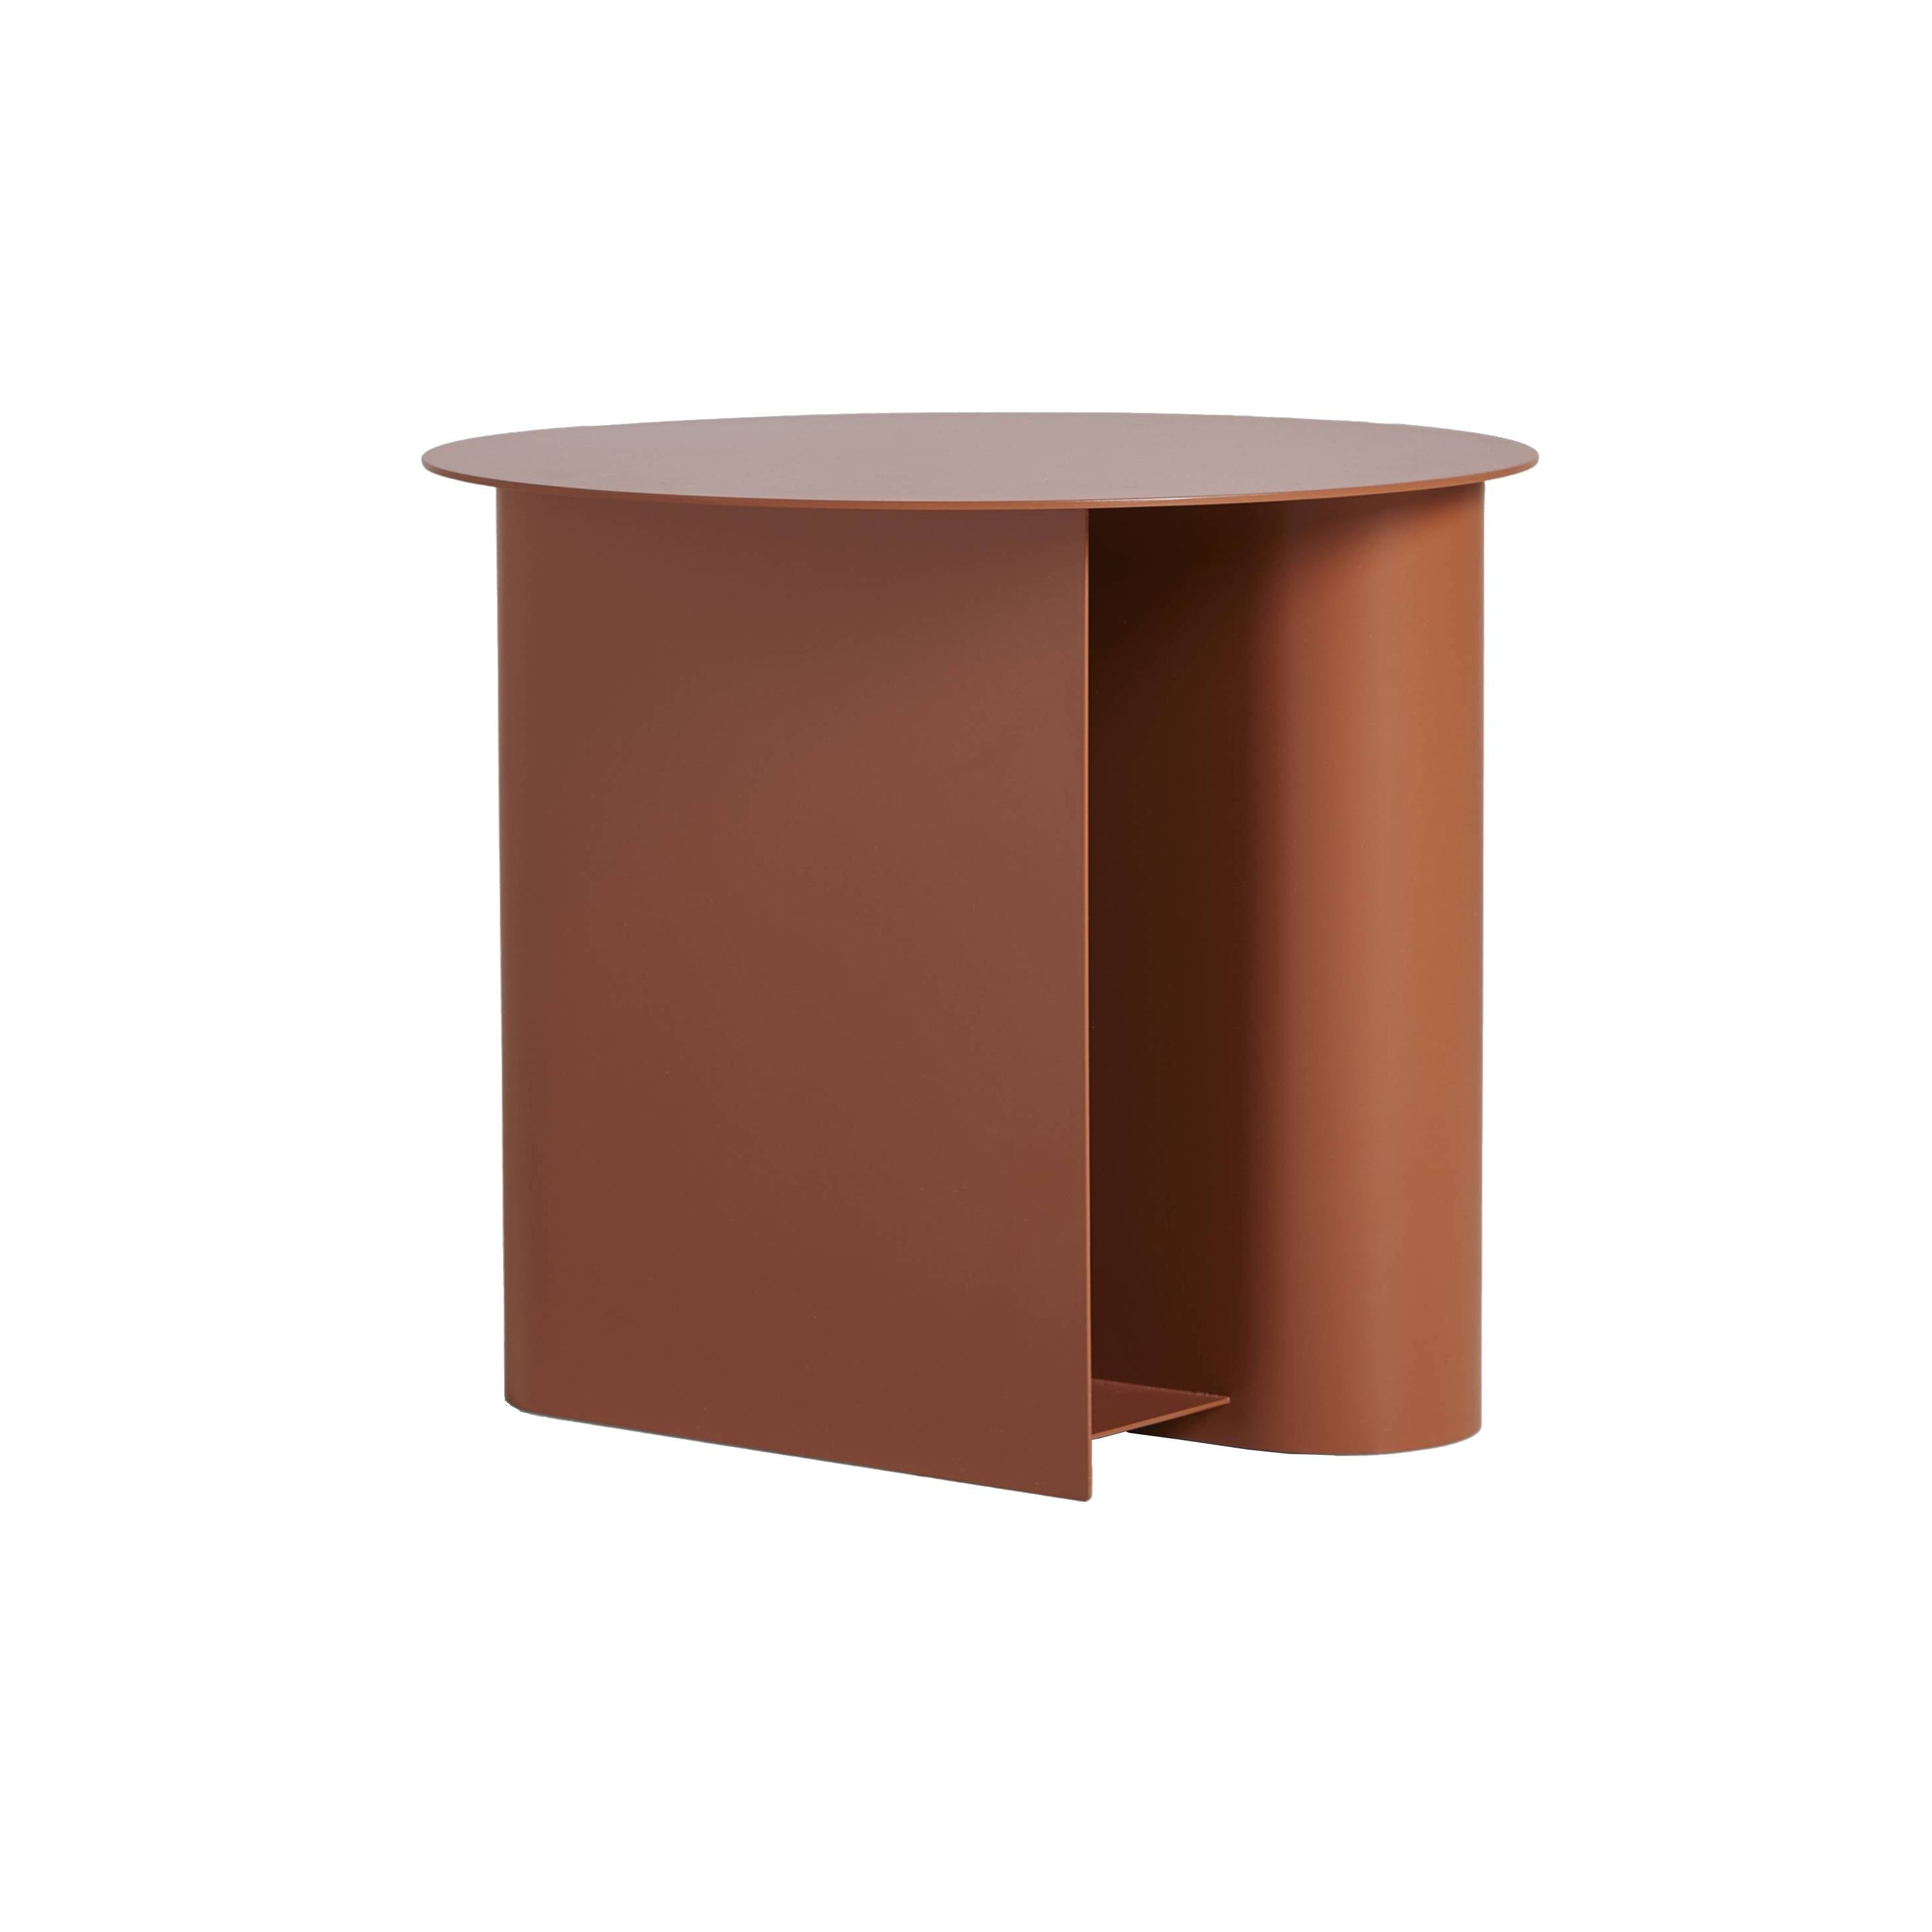 Sentrum Side Table: Burnt Orange